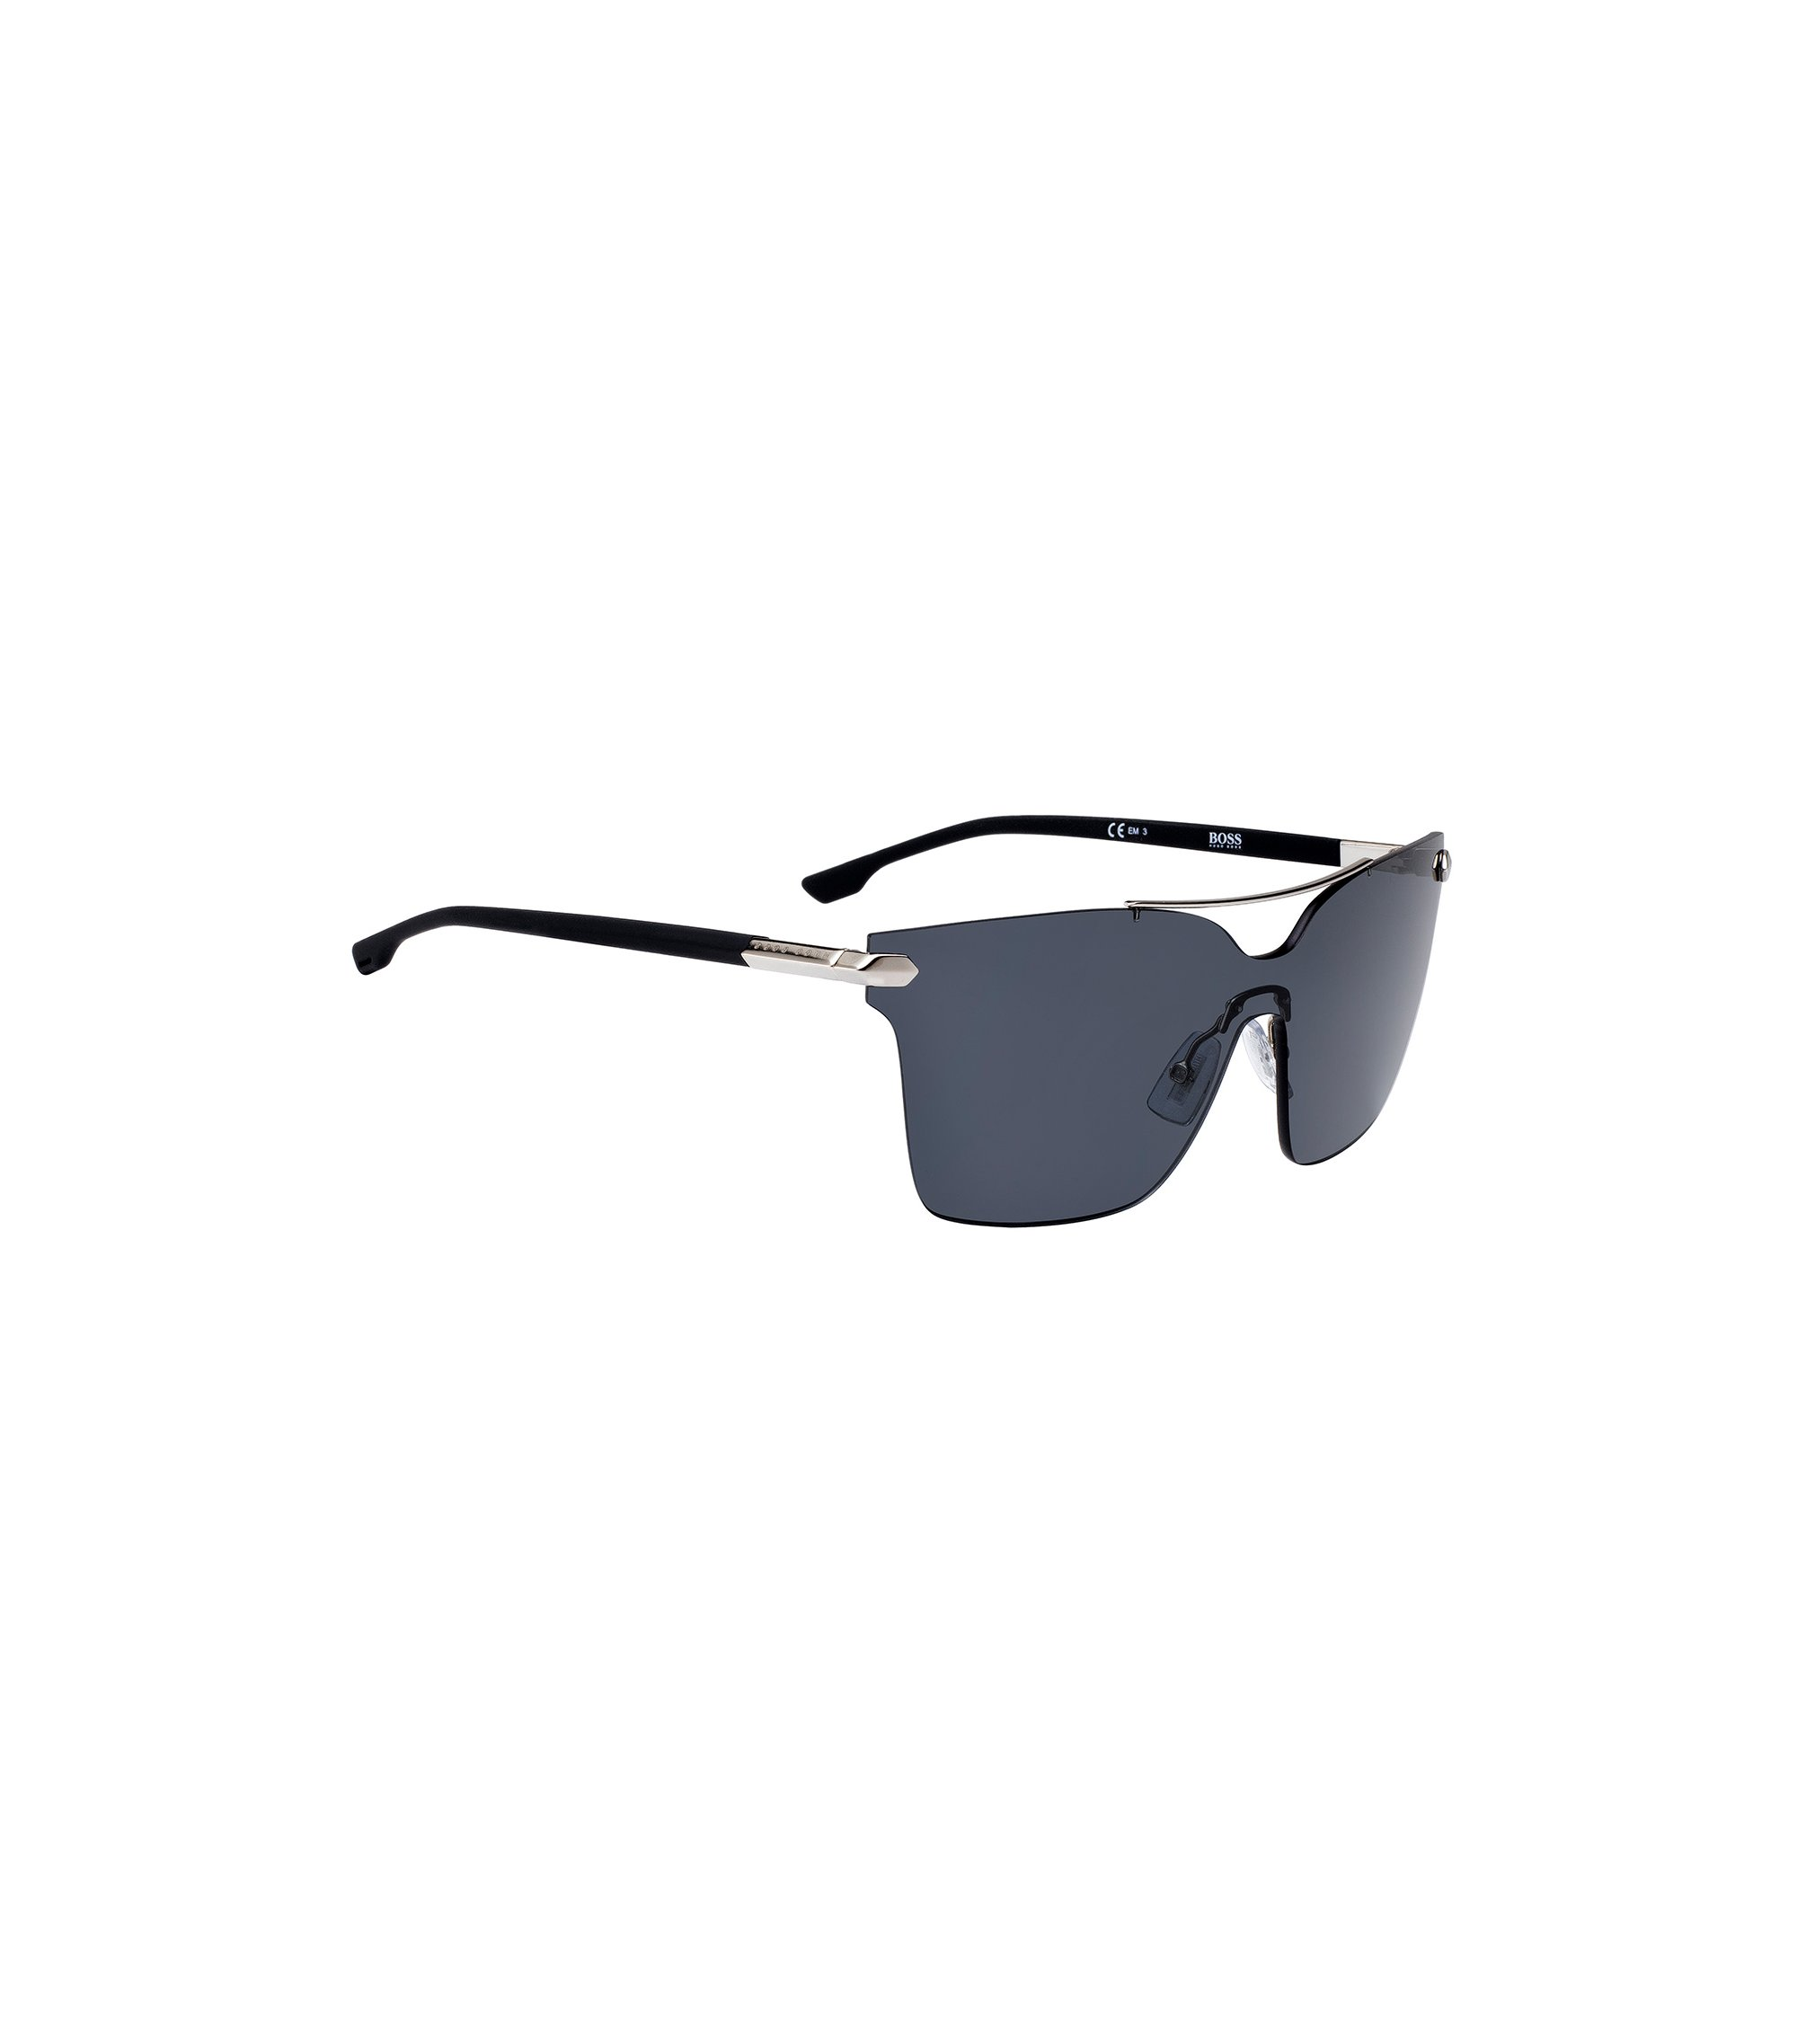 Shield sunglasses with cufflink detail, Black